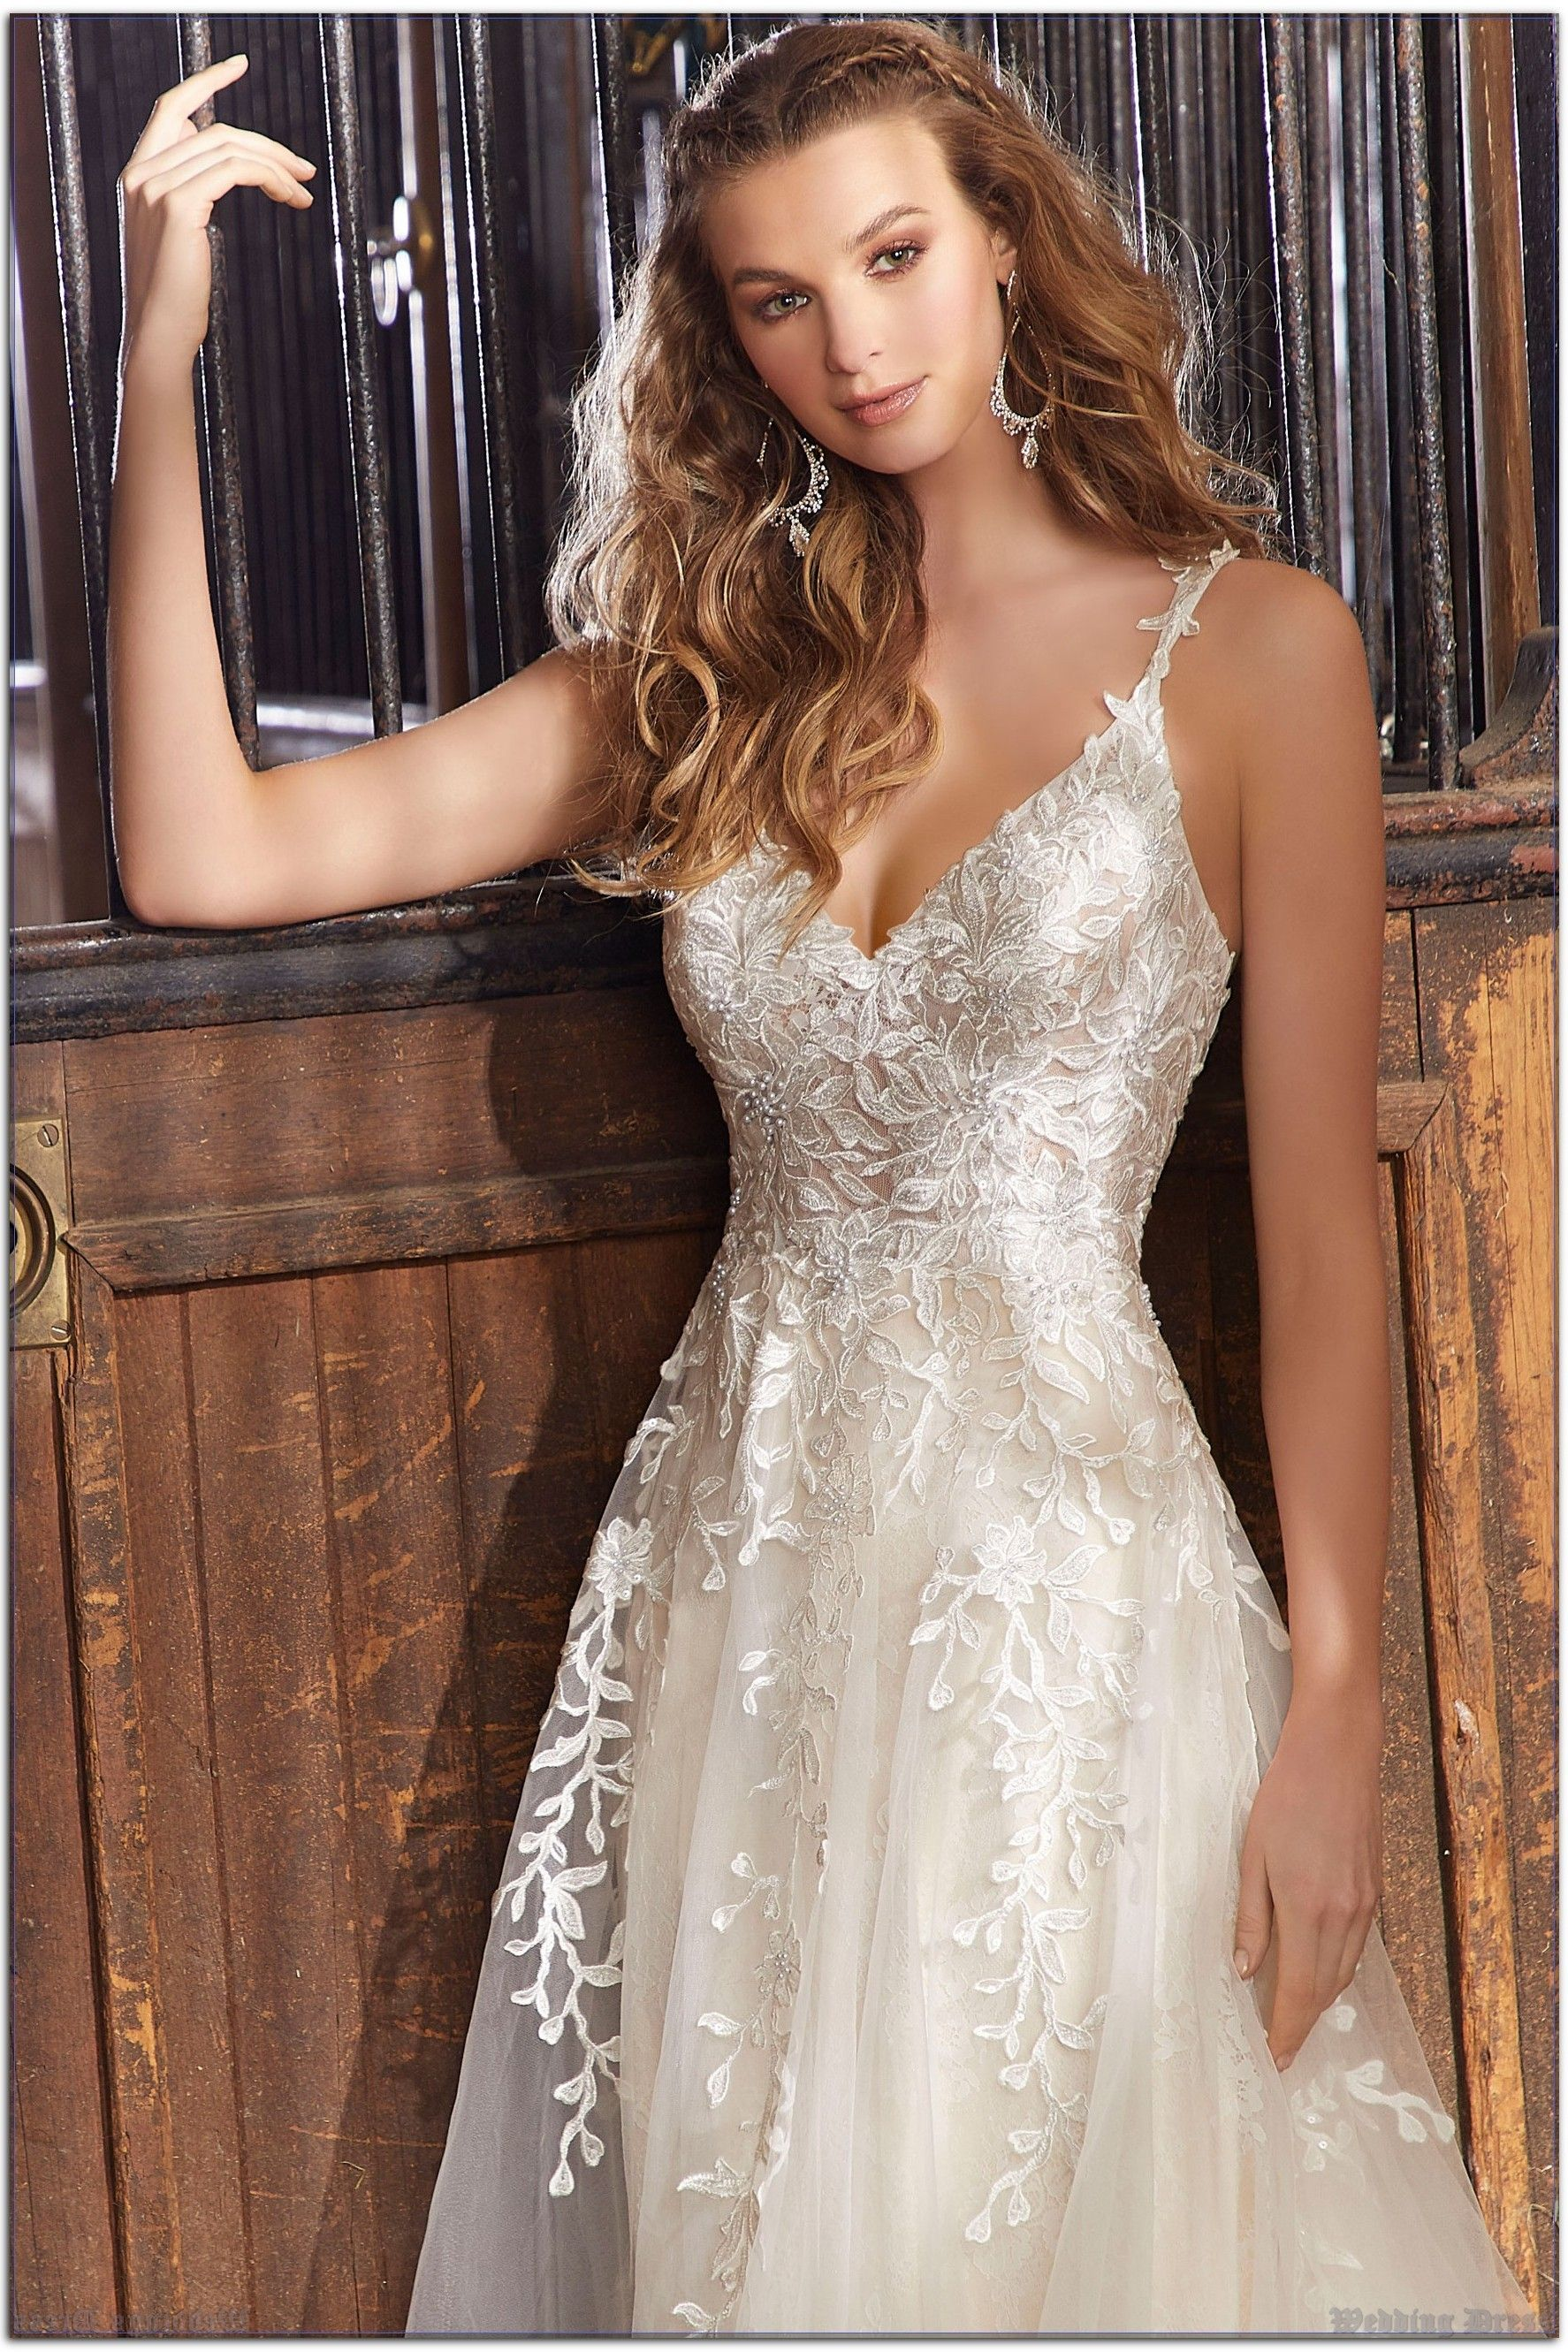 Weddings Dress Is Crucial To Your Business. Learn Why!